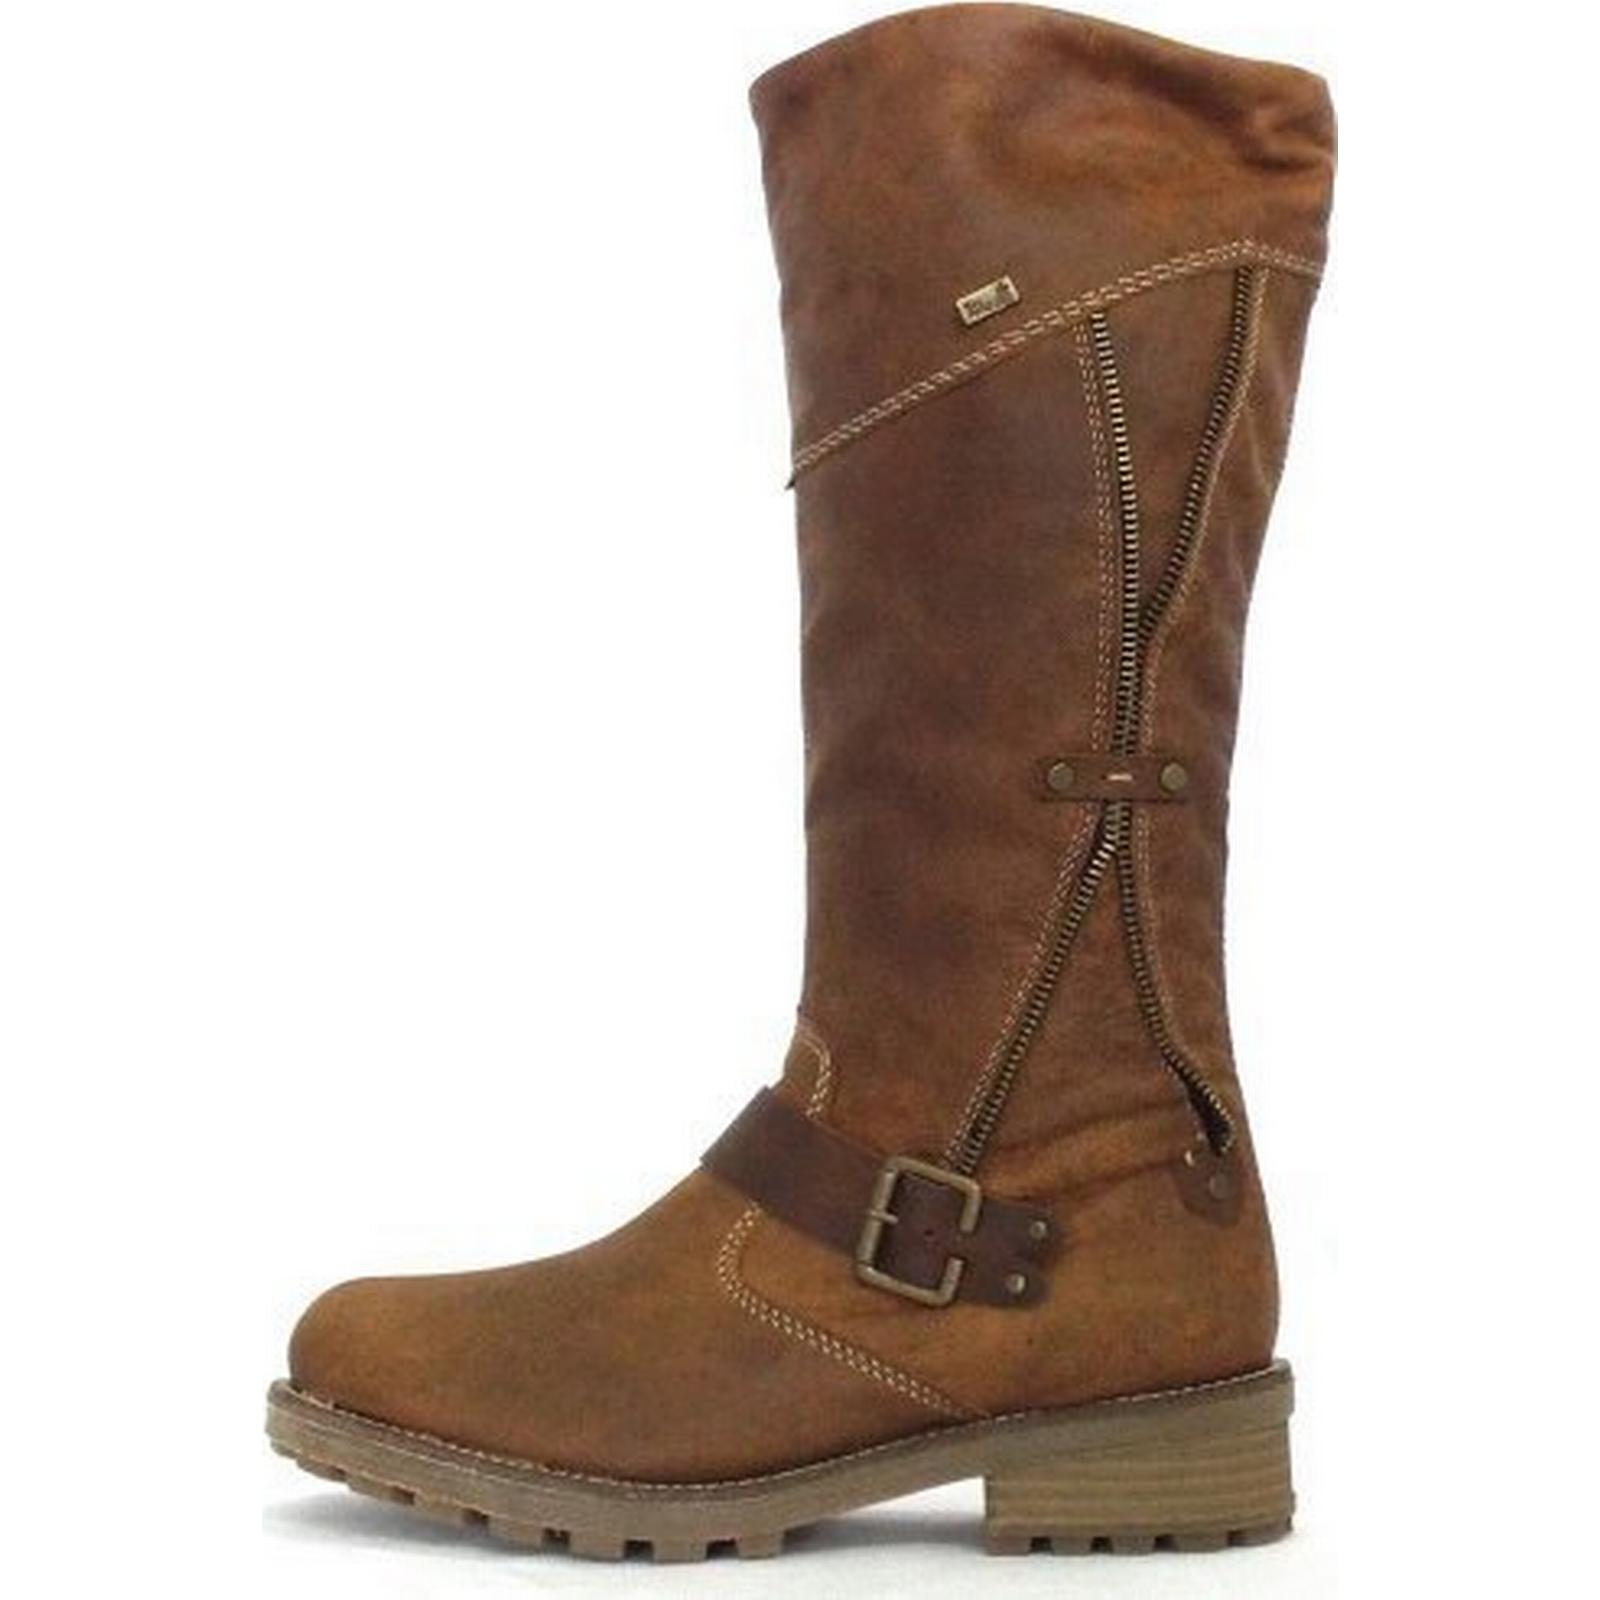 Rieker Austin Tan Leather Long Boots Boots Long Size: 42, Colour: TAN a55238